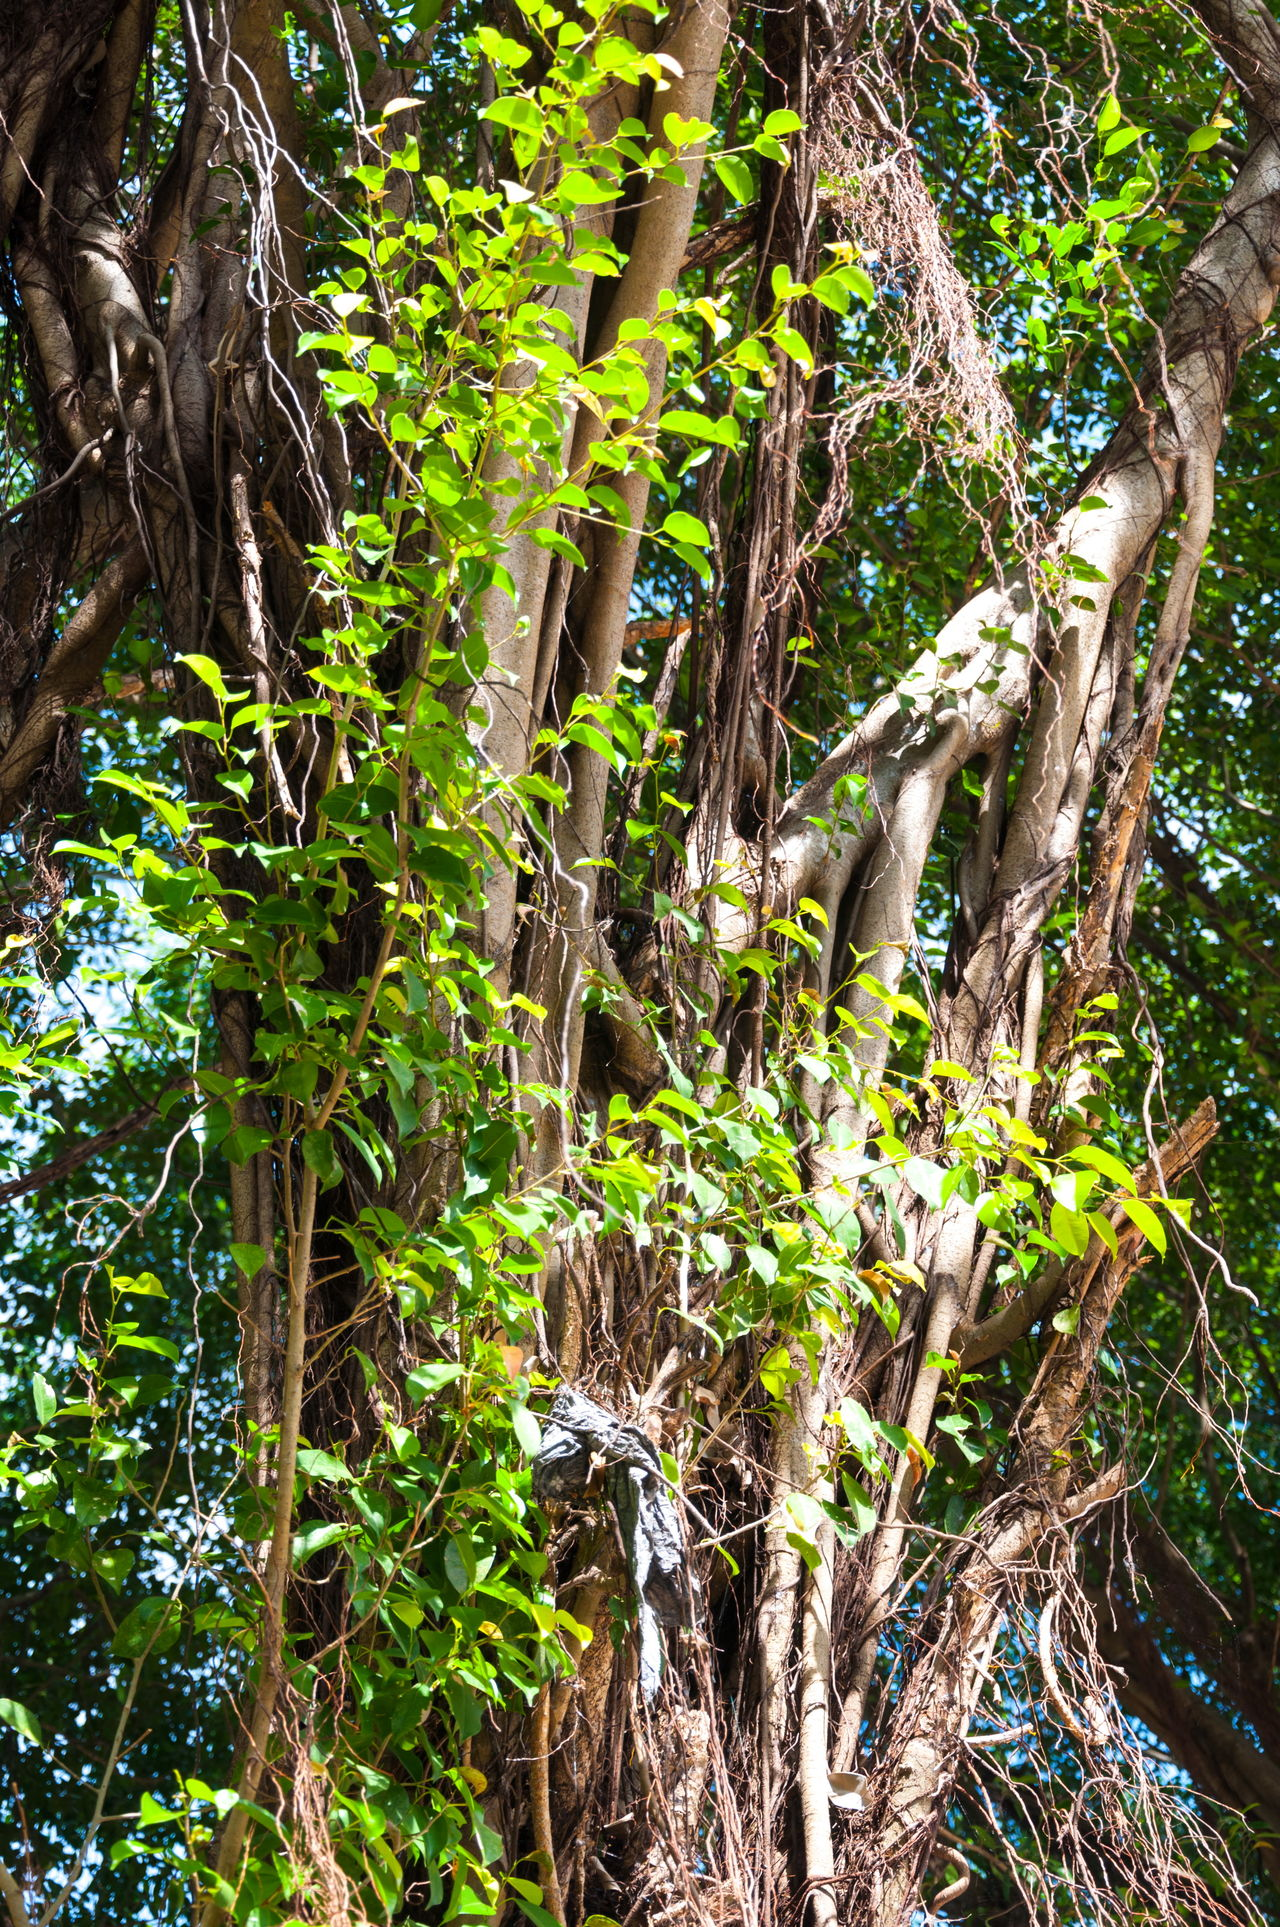 Branches of banyan tree with roots pattern Banyan Banyan Tree Banyan Tree Roots Beauty In Nature Brown Day Forest Green Color Growth Leaves Nature No People Outdoors Plant Roots Roots Of Tree Tranquility Tree Tree Trunk